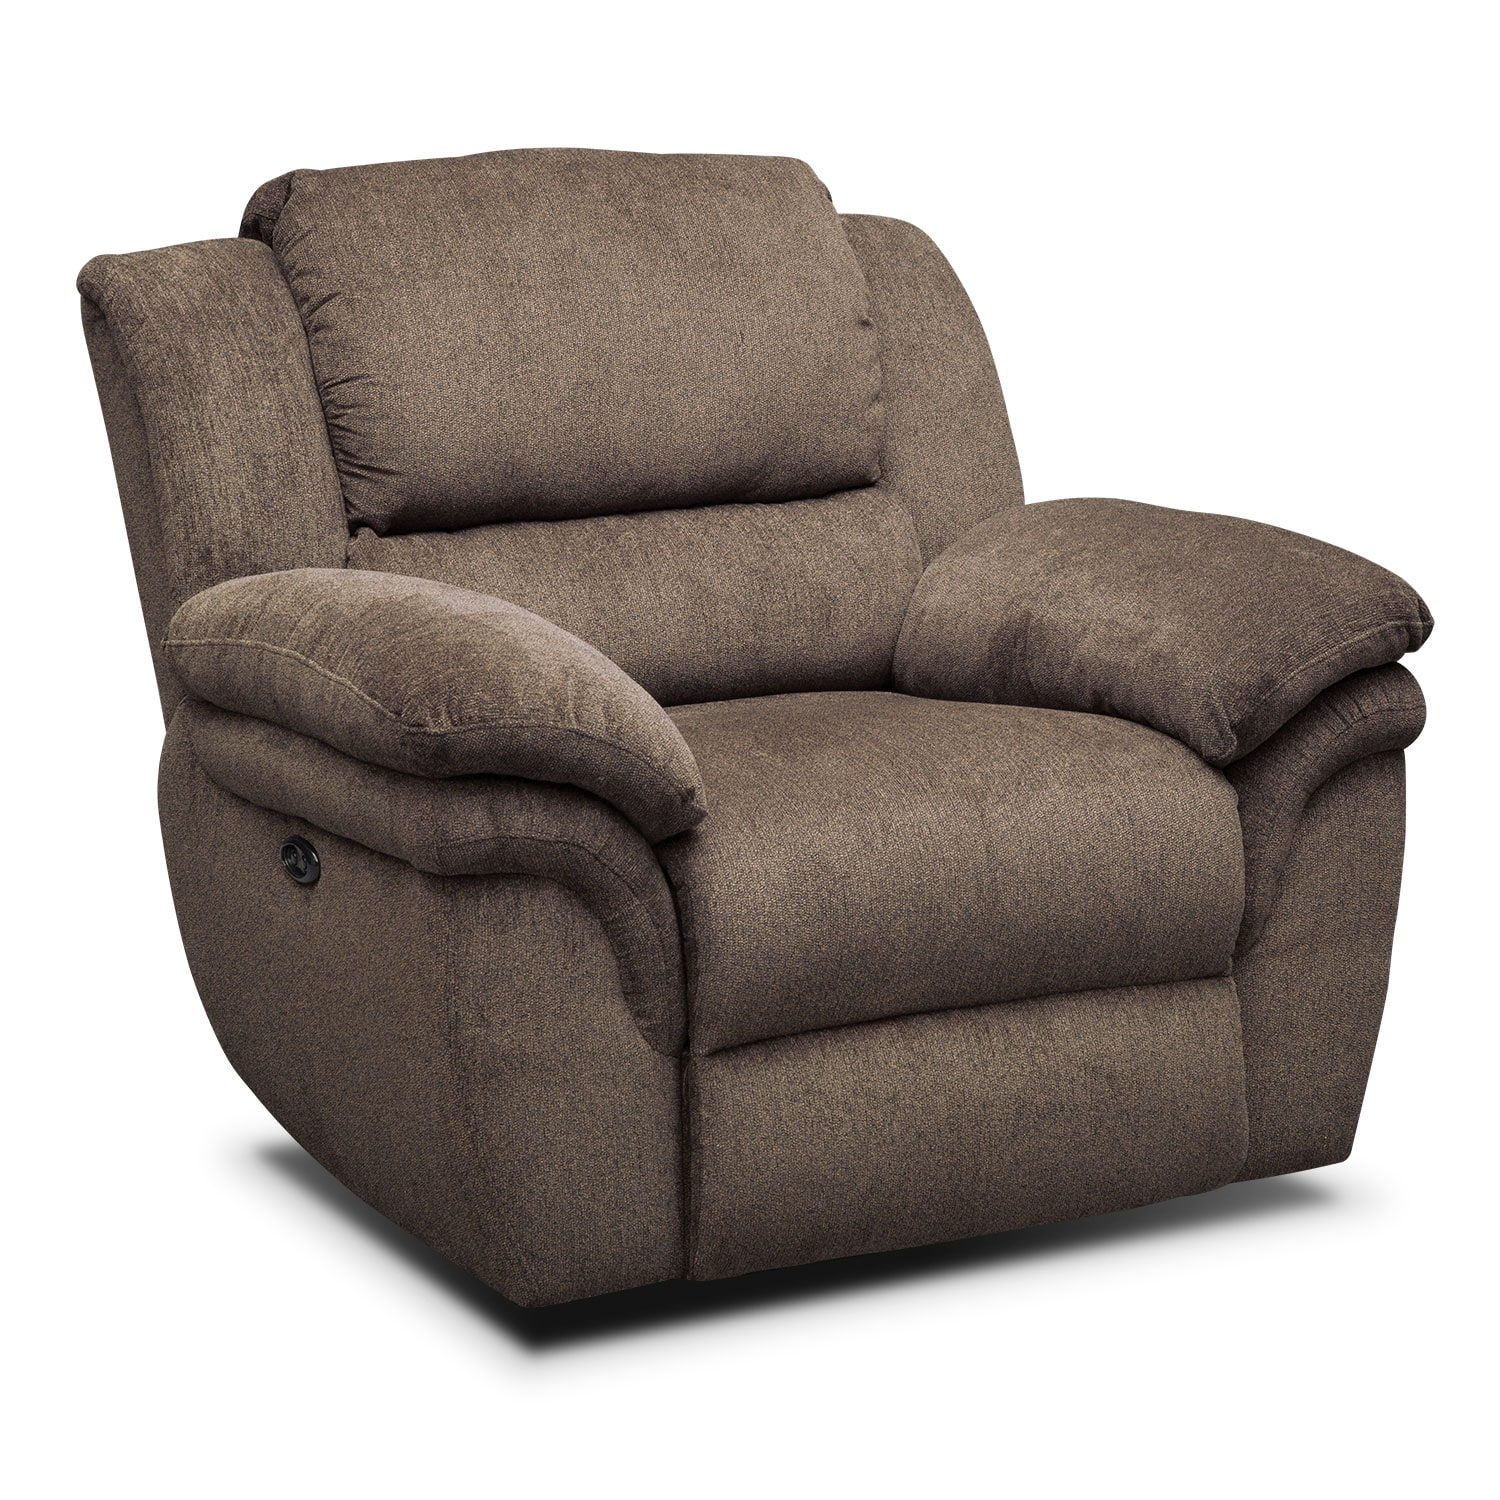 Aldo Power Reclining Sofa Loveseat and Recliner Set Mocha